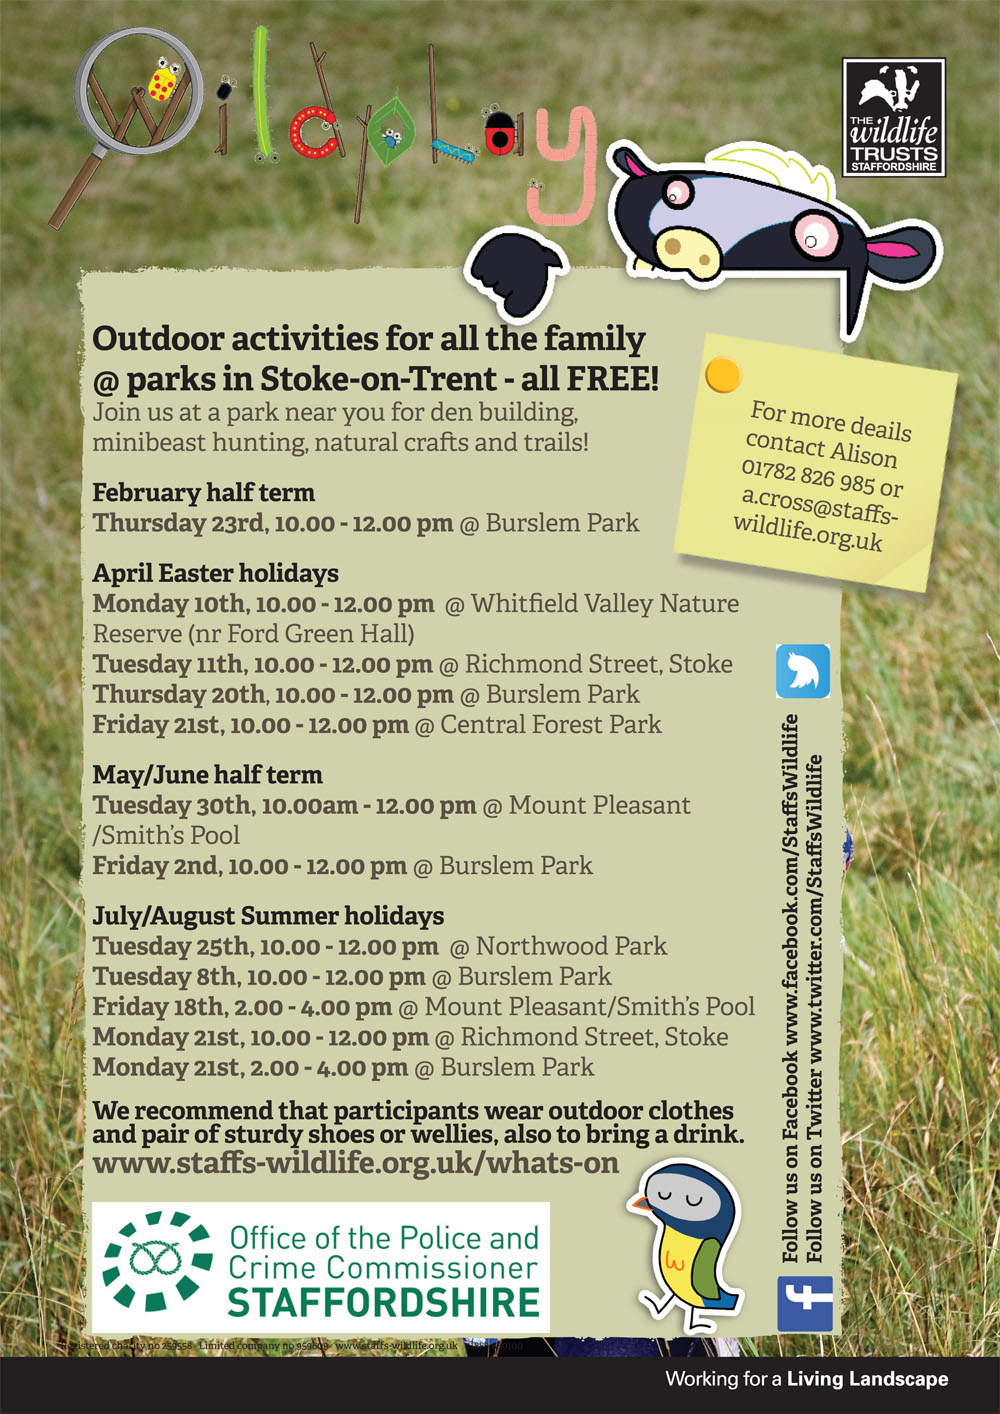 Outdoor-family-activities-StokeonTrent-Staffordshire